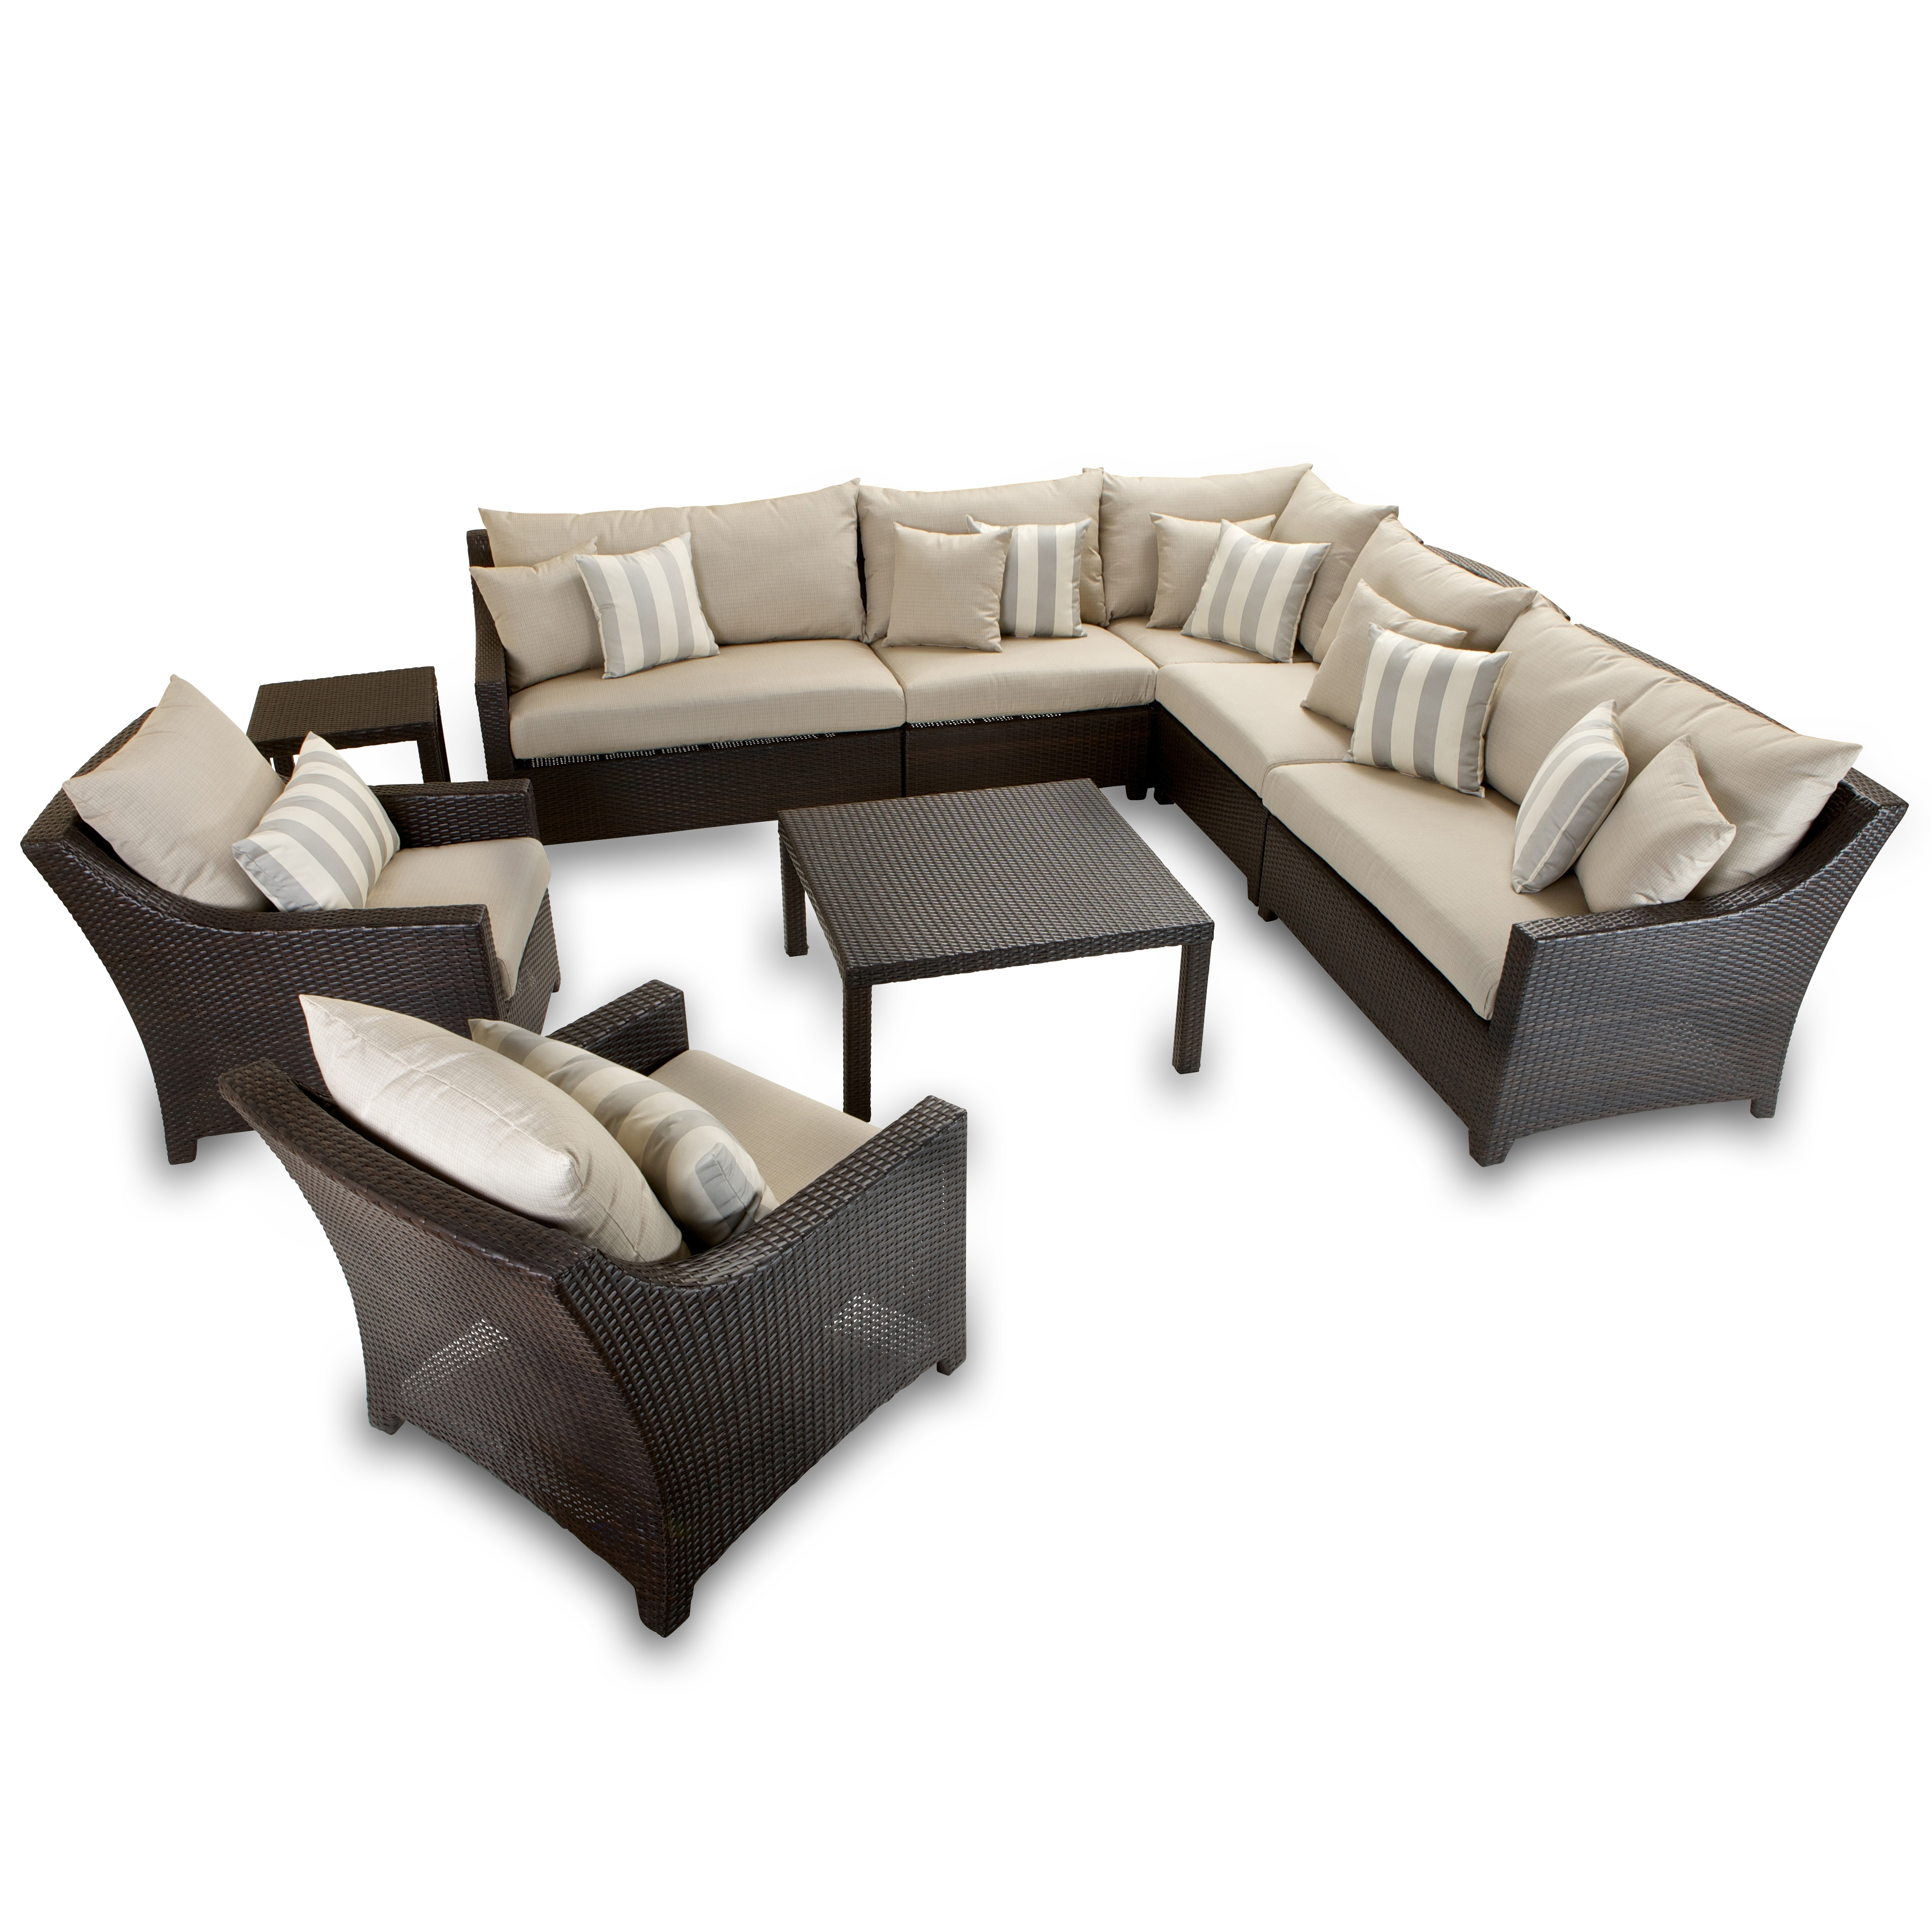 Kmart Sectional Sofa With Kmart Sectional Sofas (Image 9 of 10)